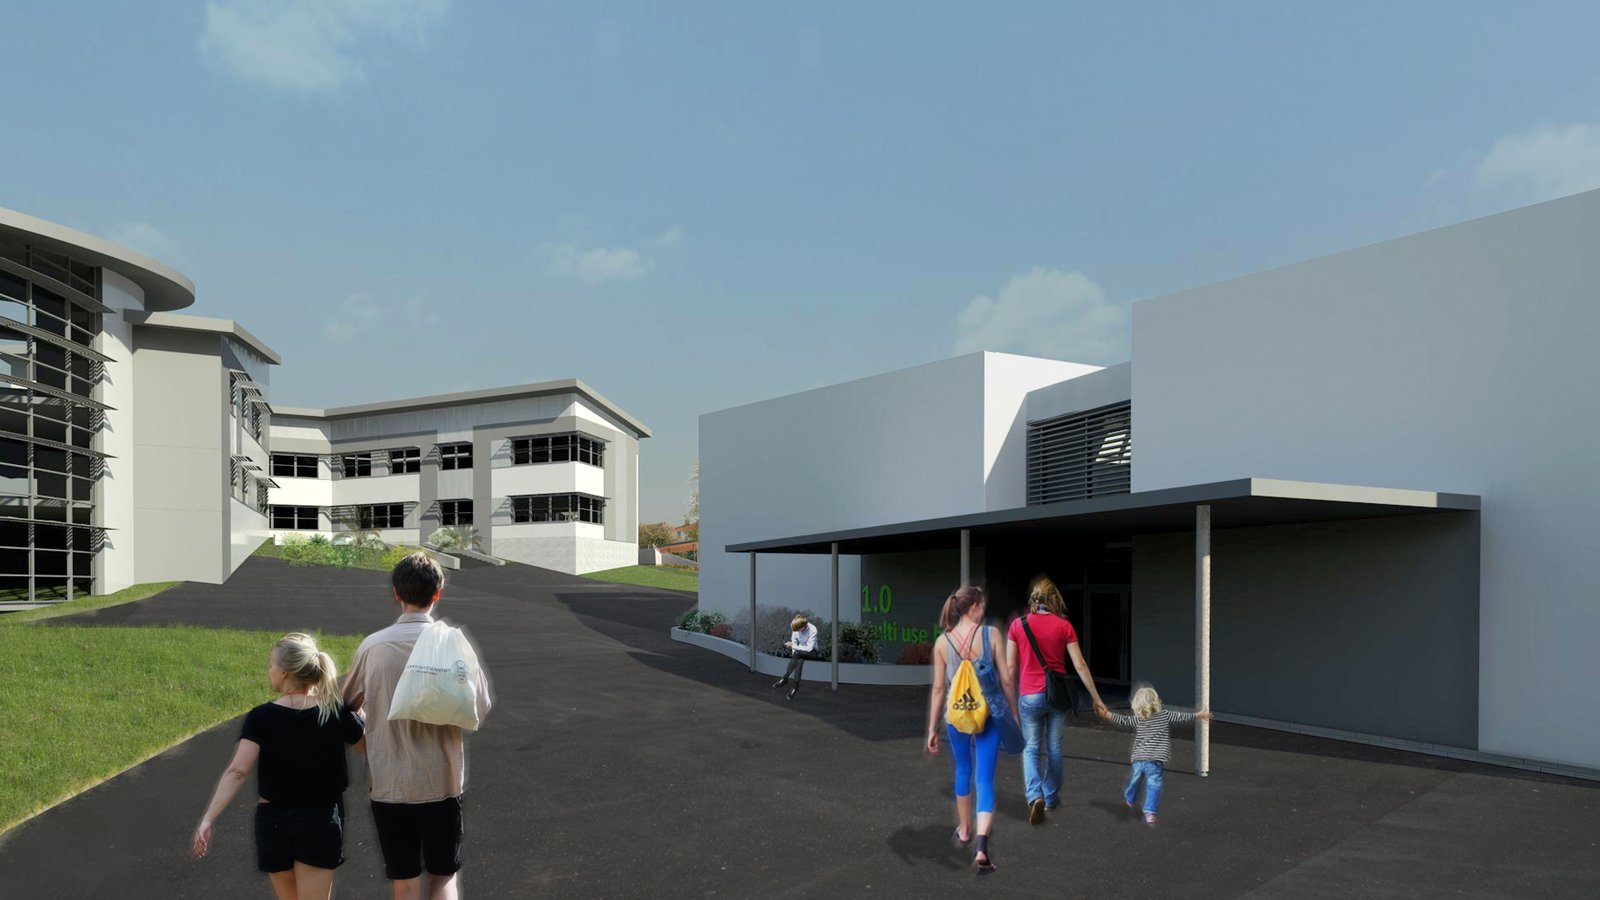 Image of the proposed extension to Torquay Academy